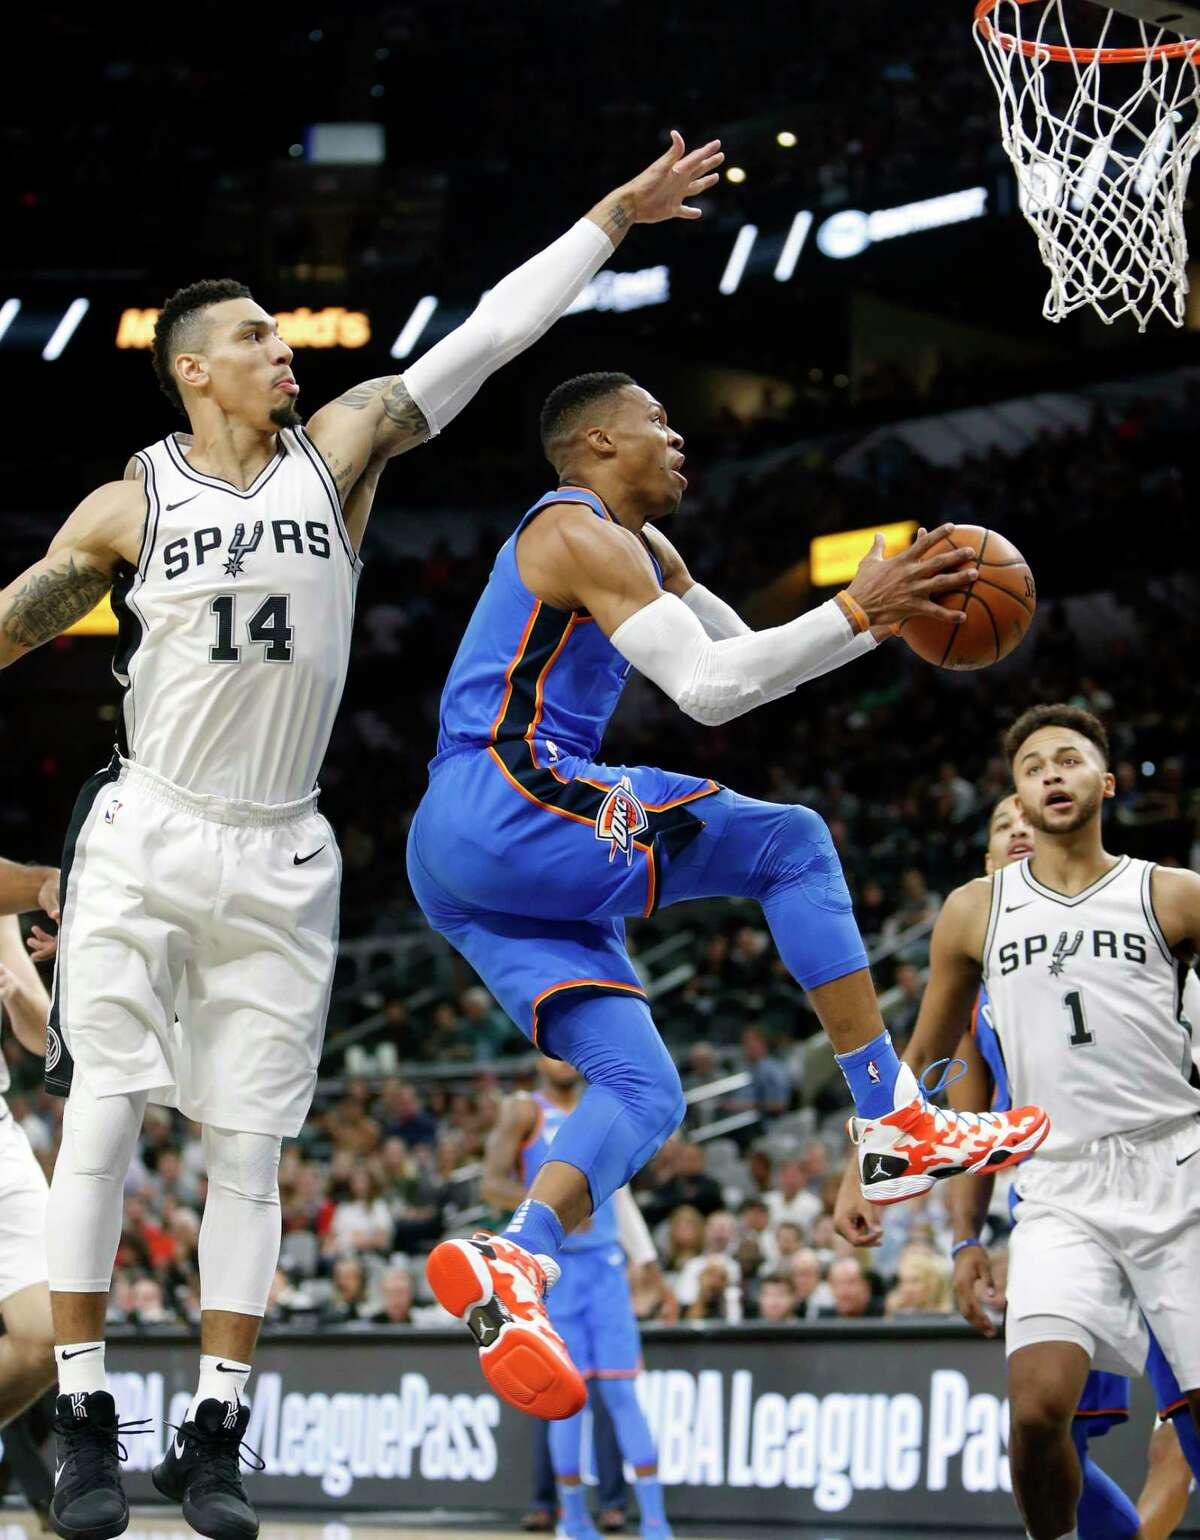 SAN ANTONIO,TX - NOVEMBER 17: Russell Westbrook #0 of the Oklahoma City Thunder drives under Danny Green #14 of the San Antonio Spurs at AT&T Center on November 17, 2017 in San Antonio, Texas. NOTE TO USER: User expressly acknowledges and agrees that , by downloading and or using this photograph, User is consenting to the terms and conditions of the Getty Images License Agreement.